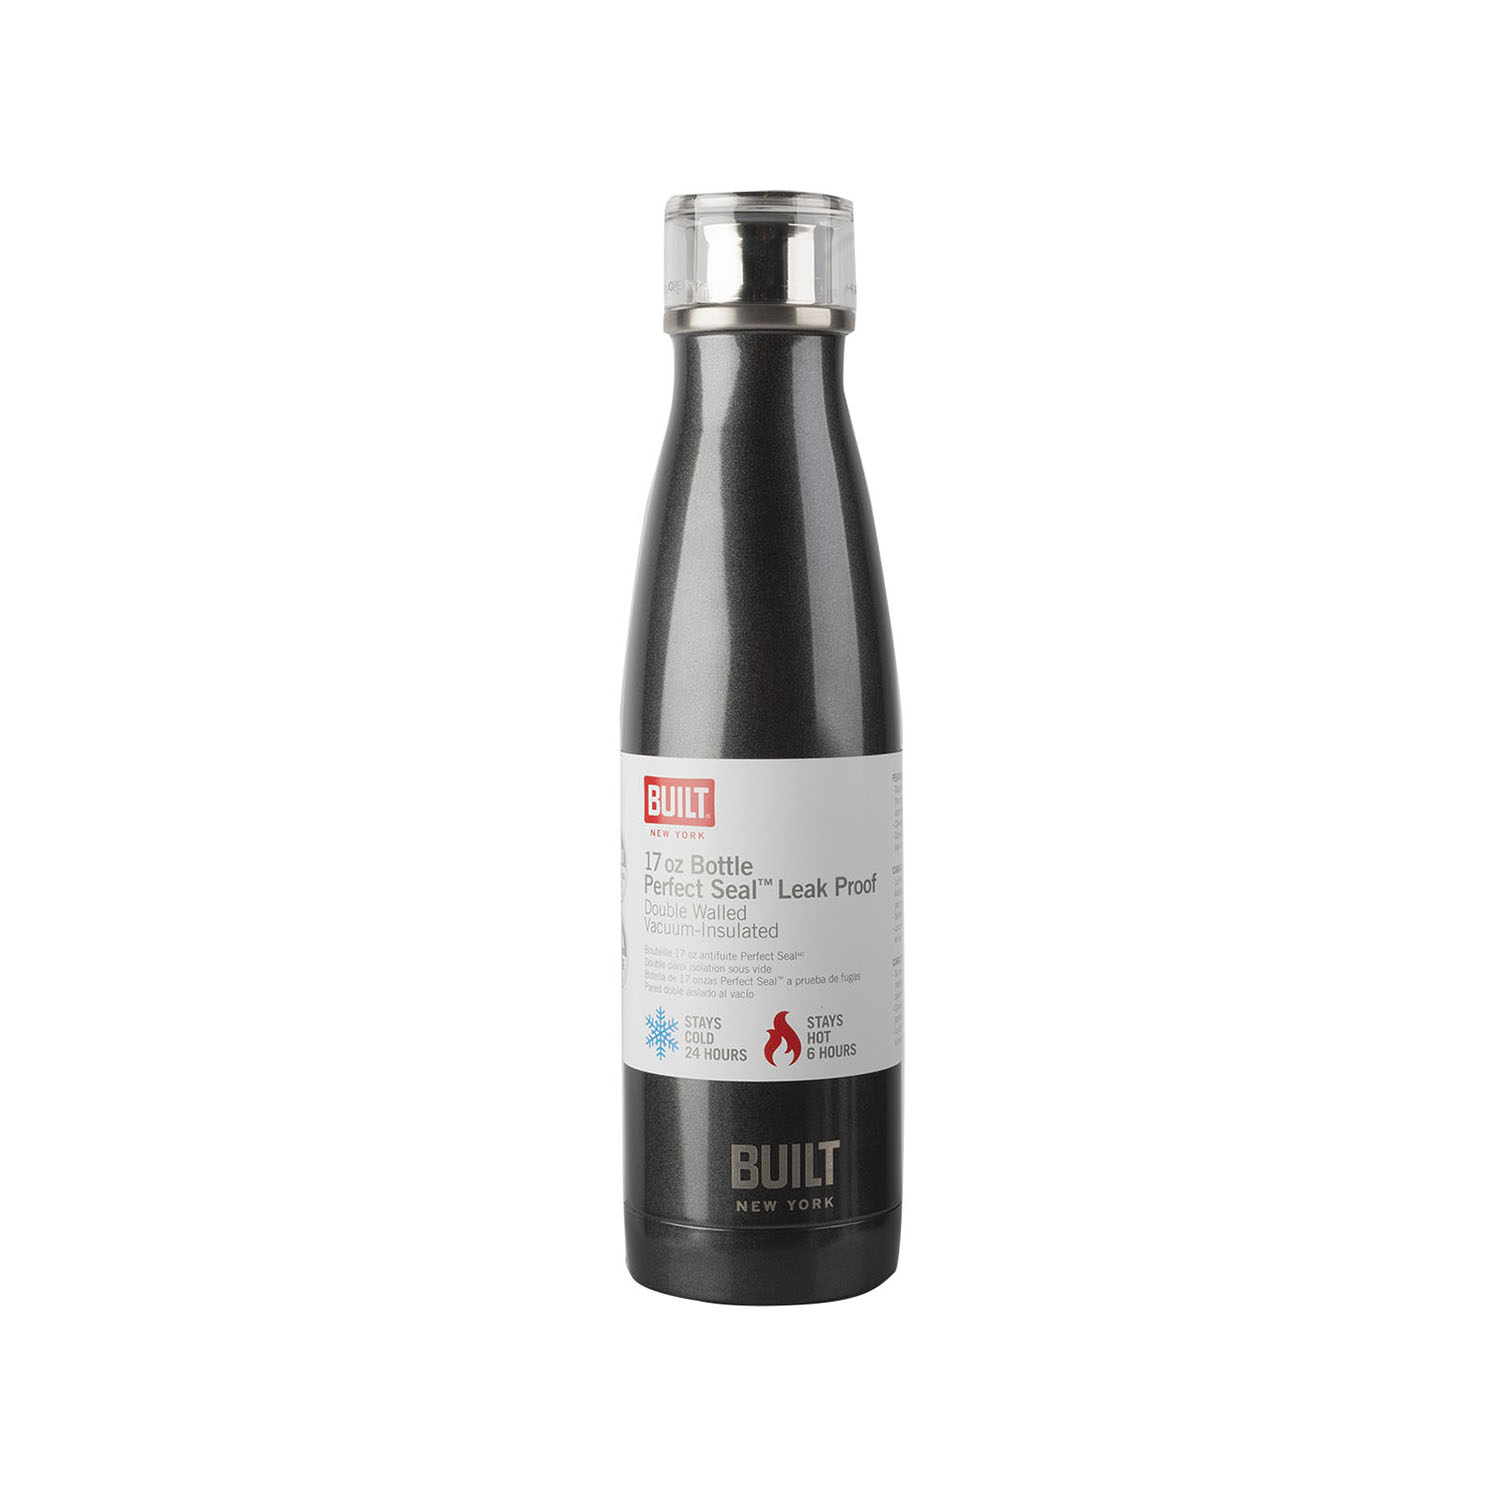 Image of Built Bottle 483ml, Charcoal Grey